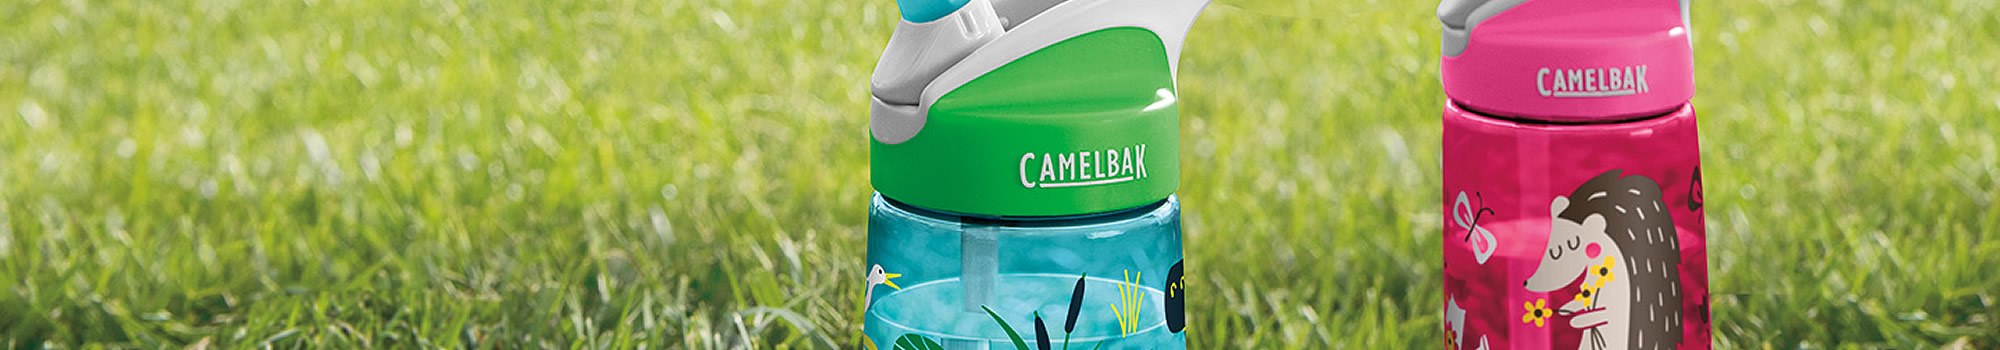 Camelbak Kids Bottles